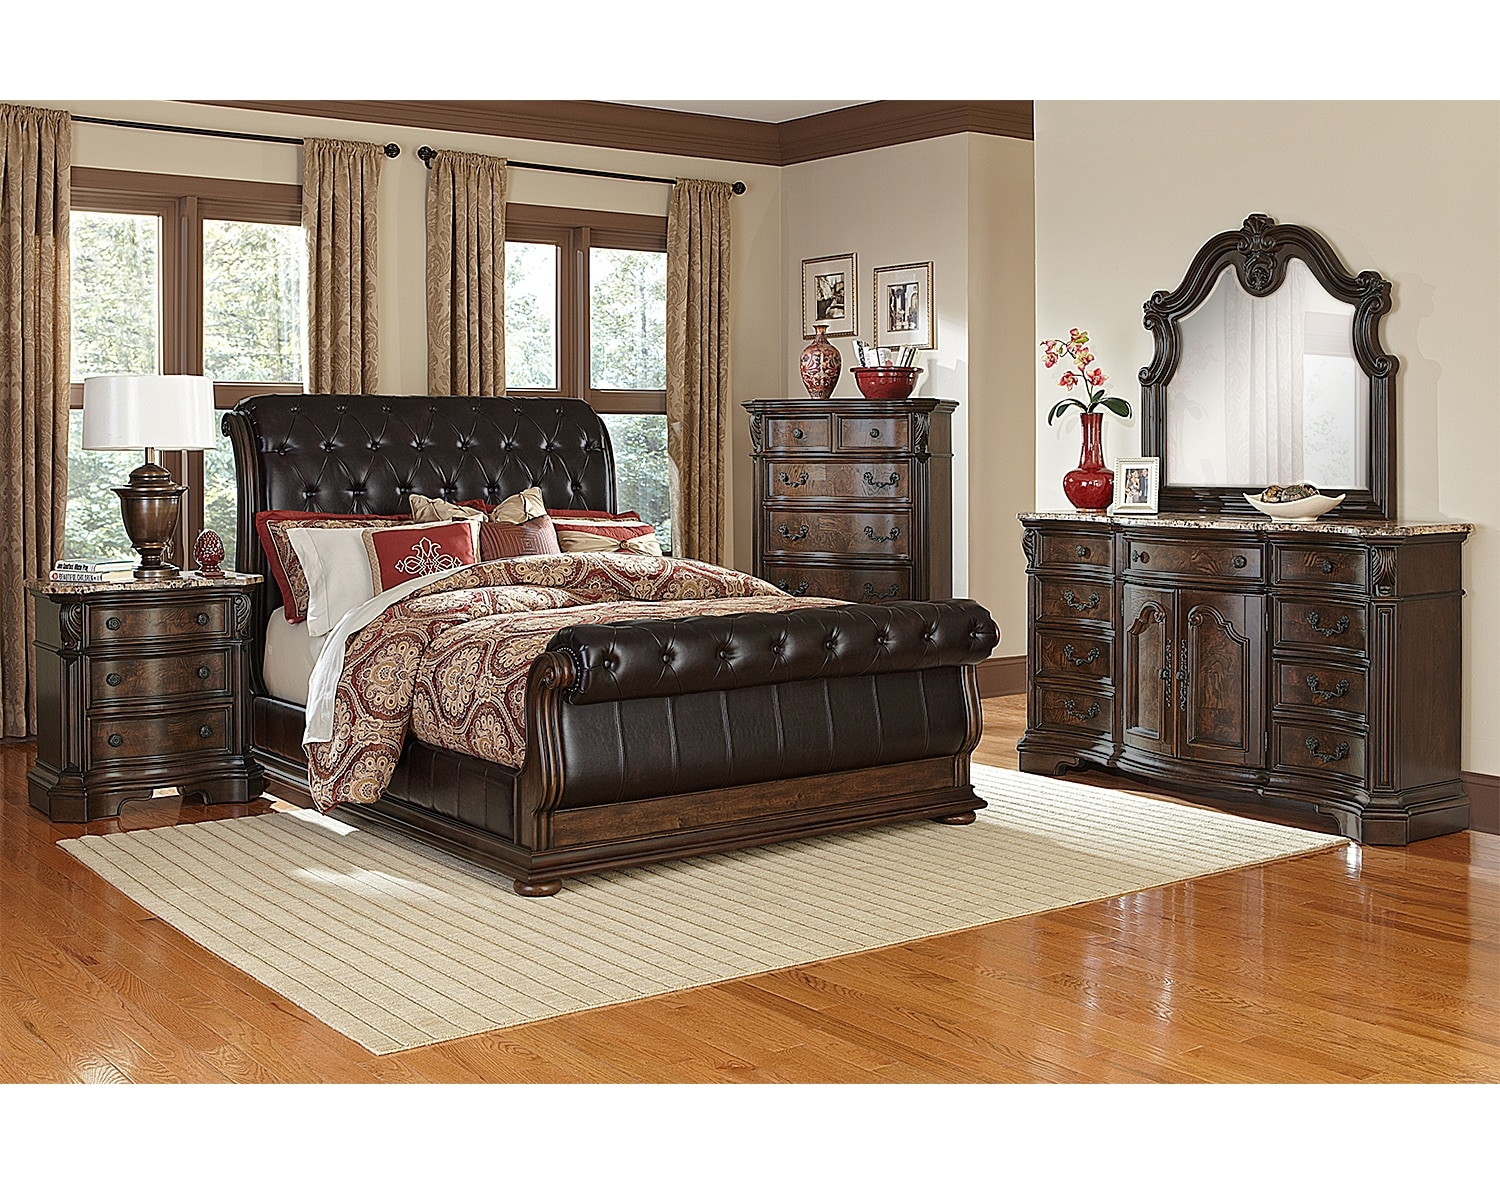 American Furniture Jpg: The Monticello Sleigh Bedroom Collection